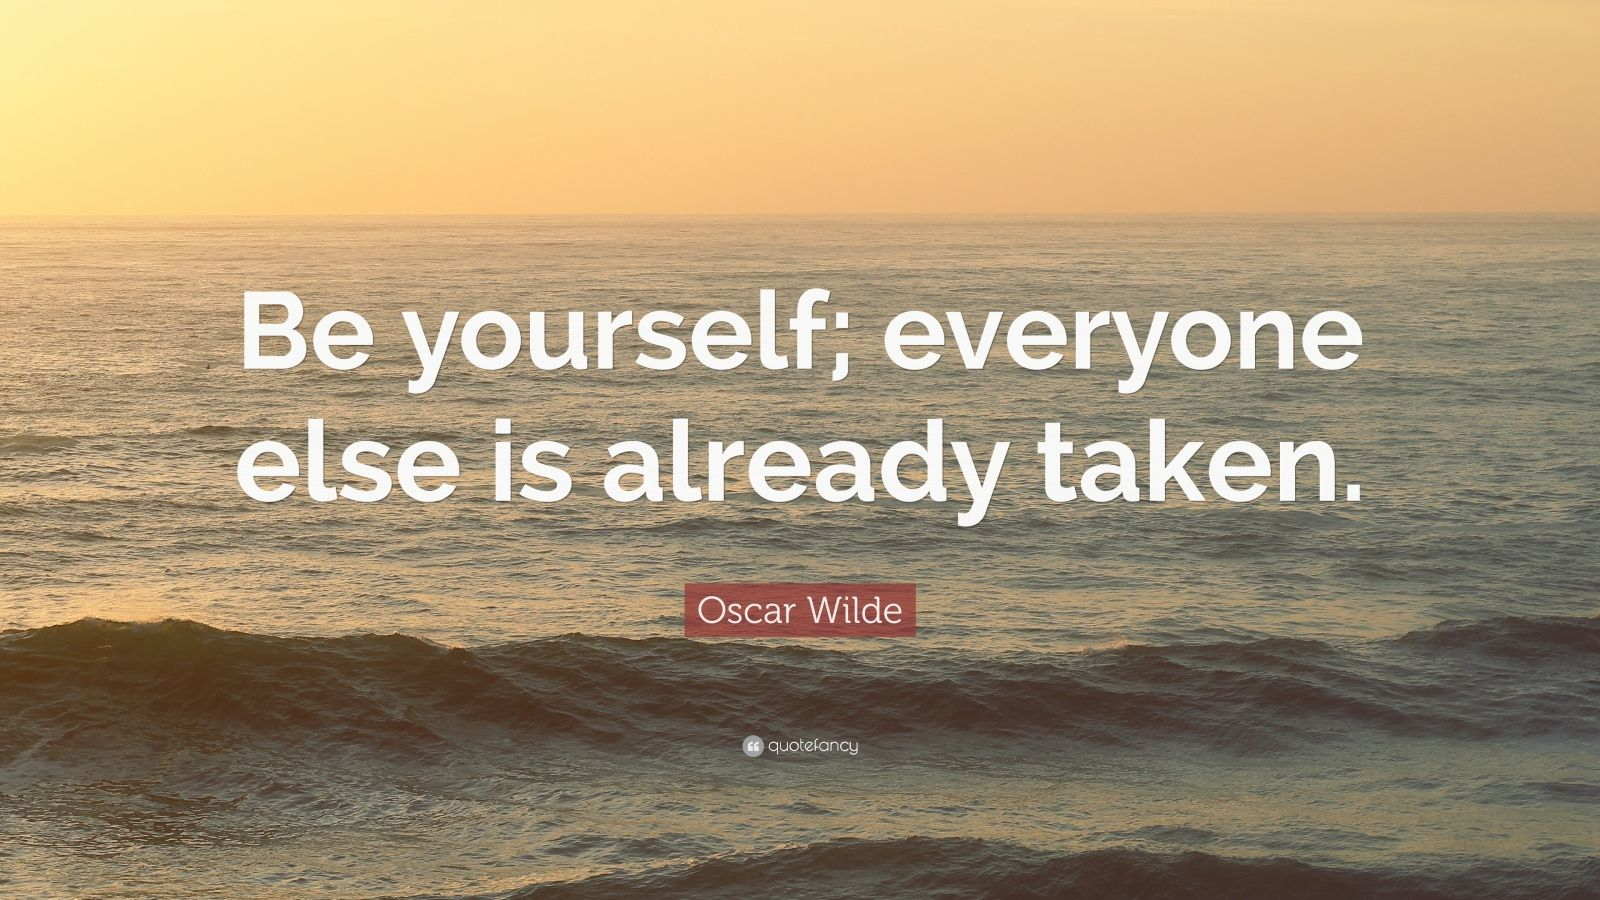 Oscar Wilde Quote Be yourself everyone else is already